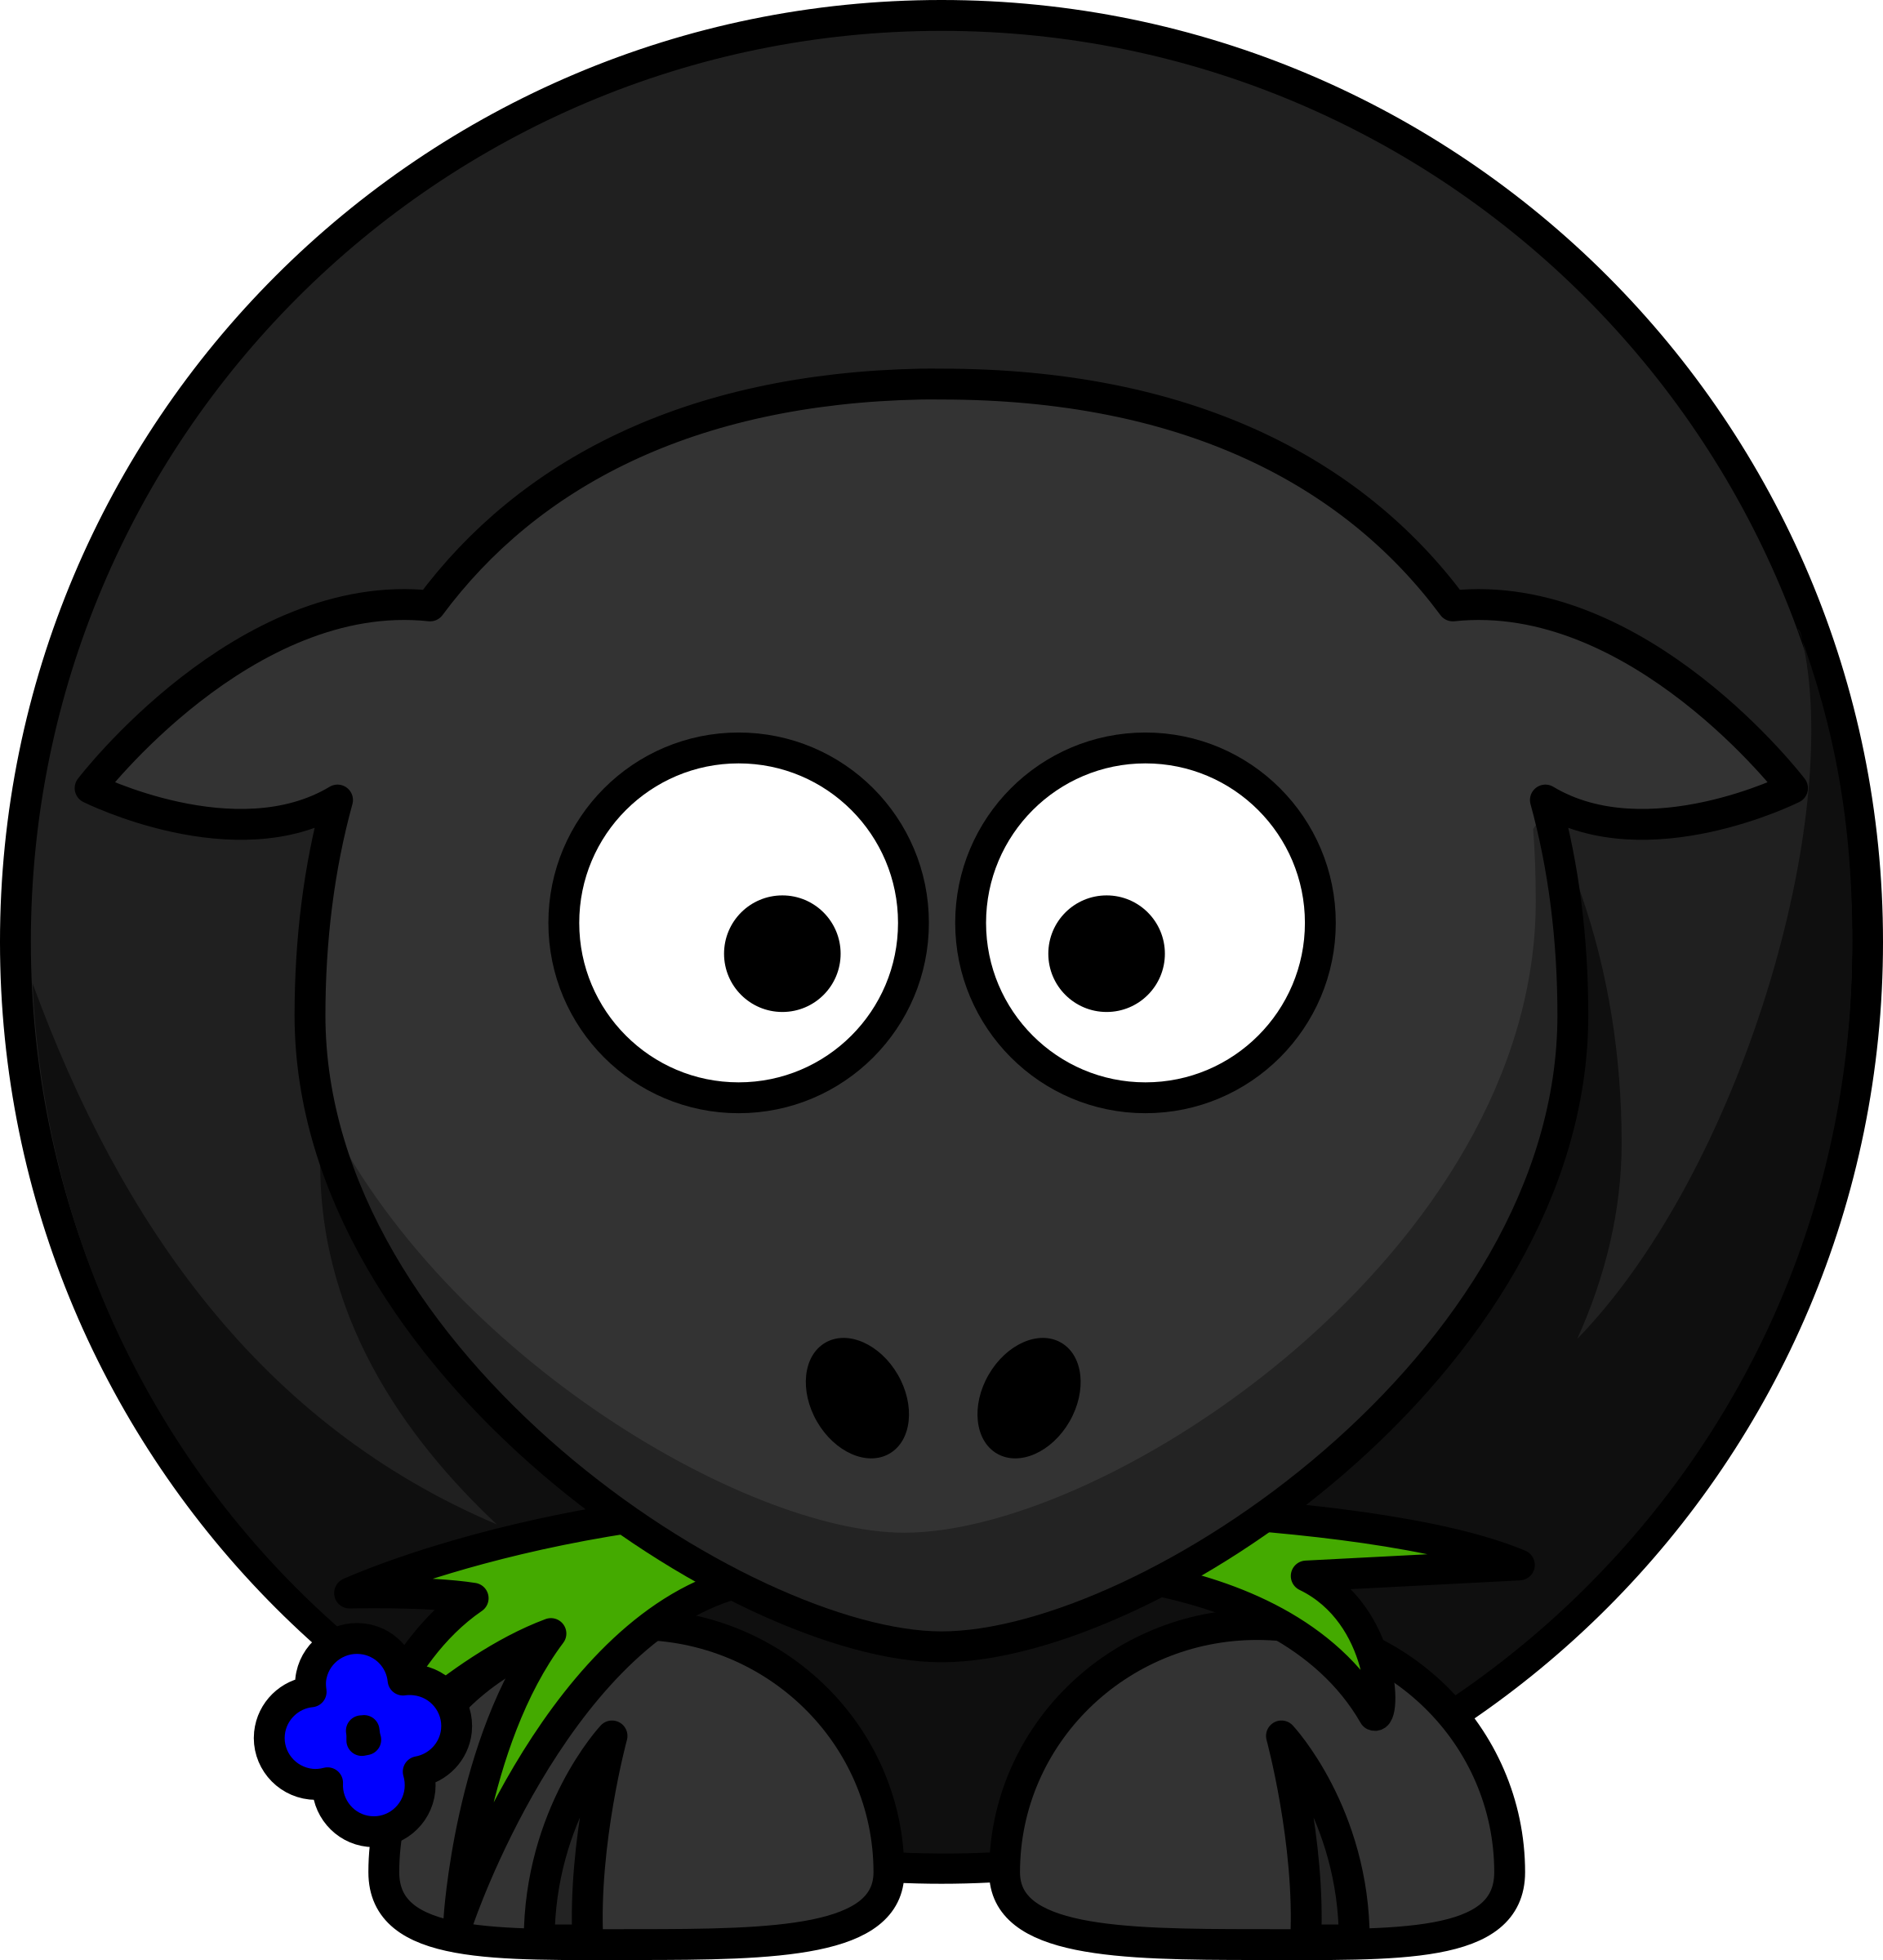 Cartoon Black Sheep by Schplook